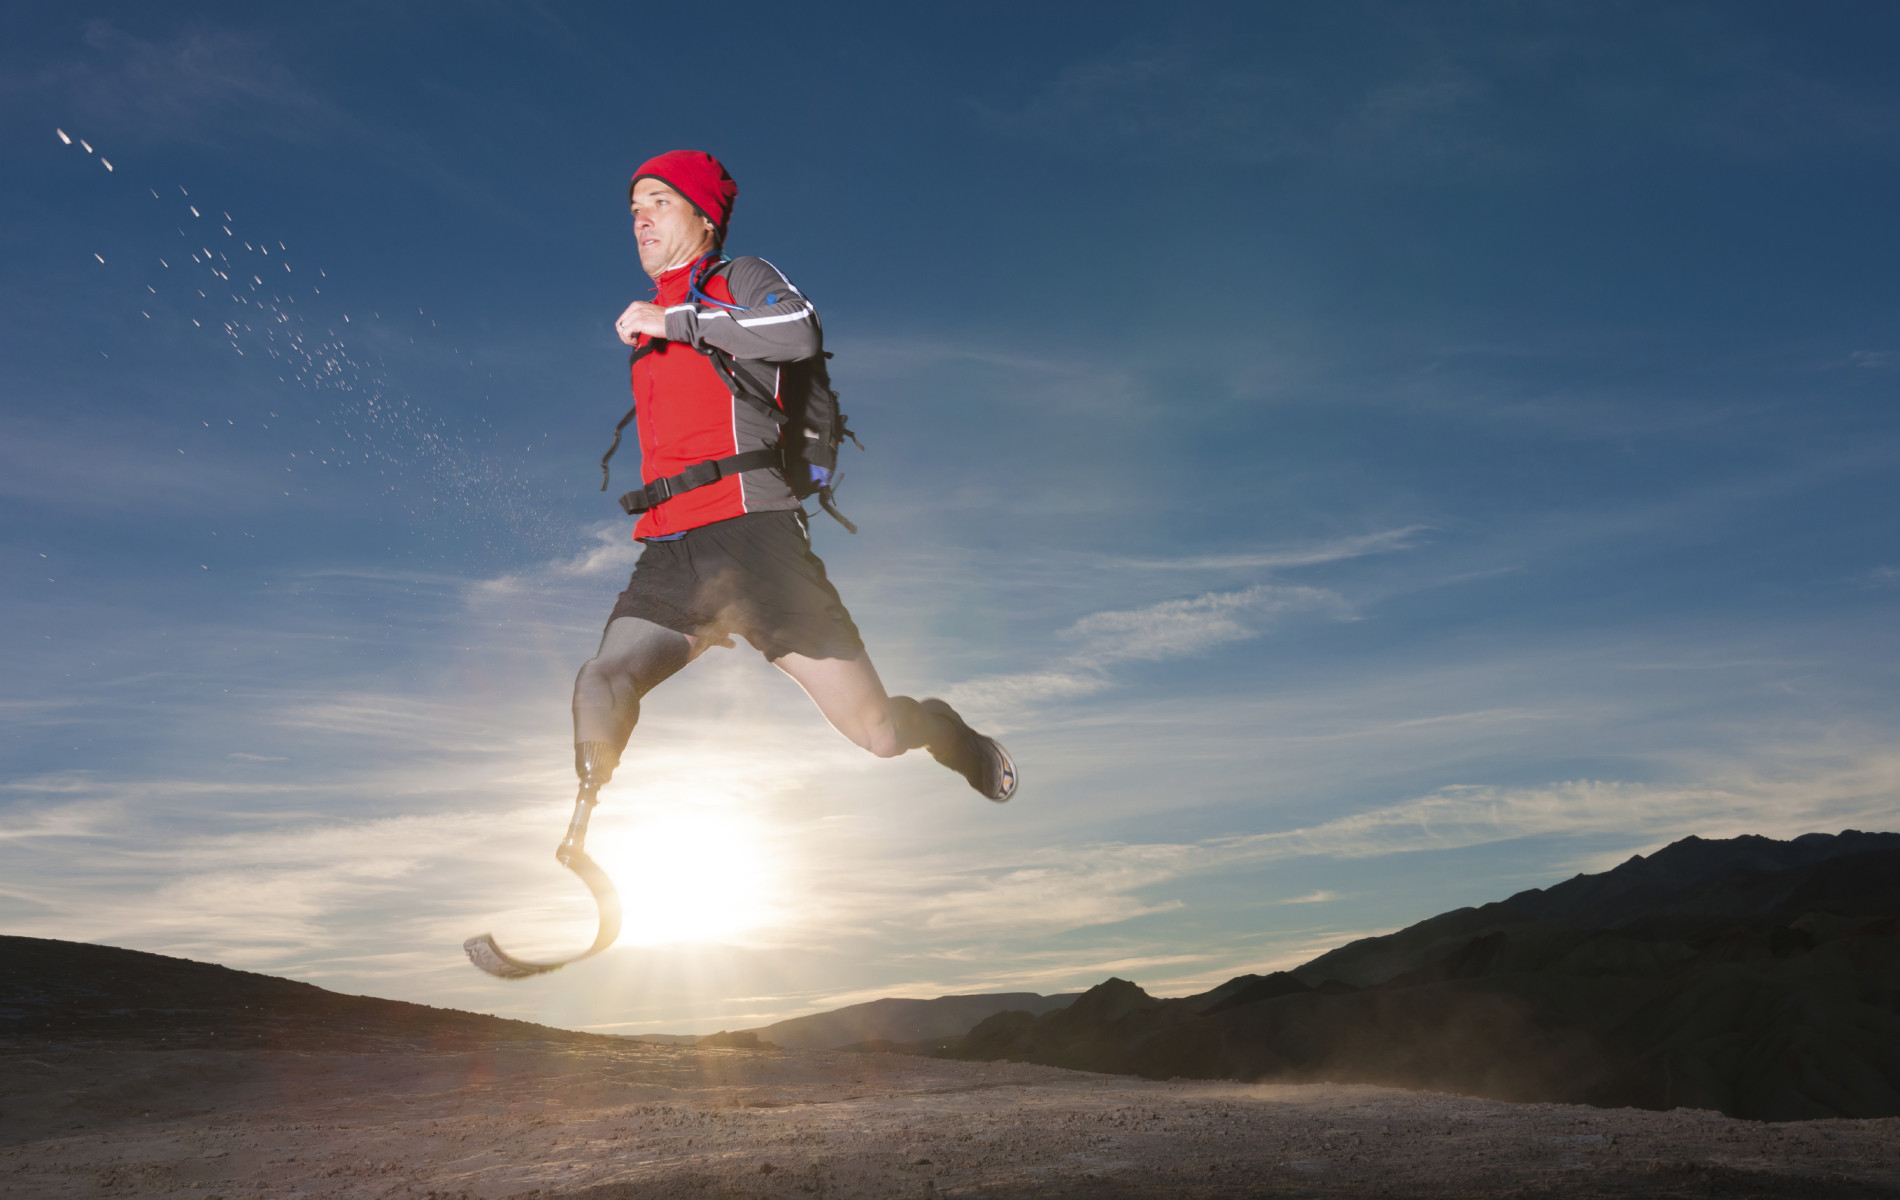 A challenged athlete running through the desert with a prosthetic leg.  [url=/file_search.php?action=file&lightboxID=8330947][img]http://blog.michaelsvoboda.com/ProstheticBanner.jpg[/img][/url]